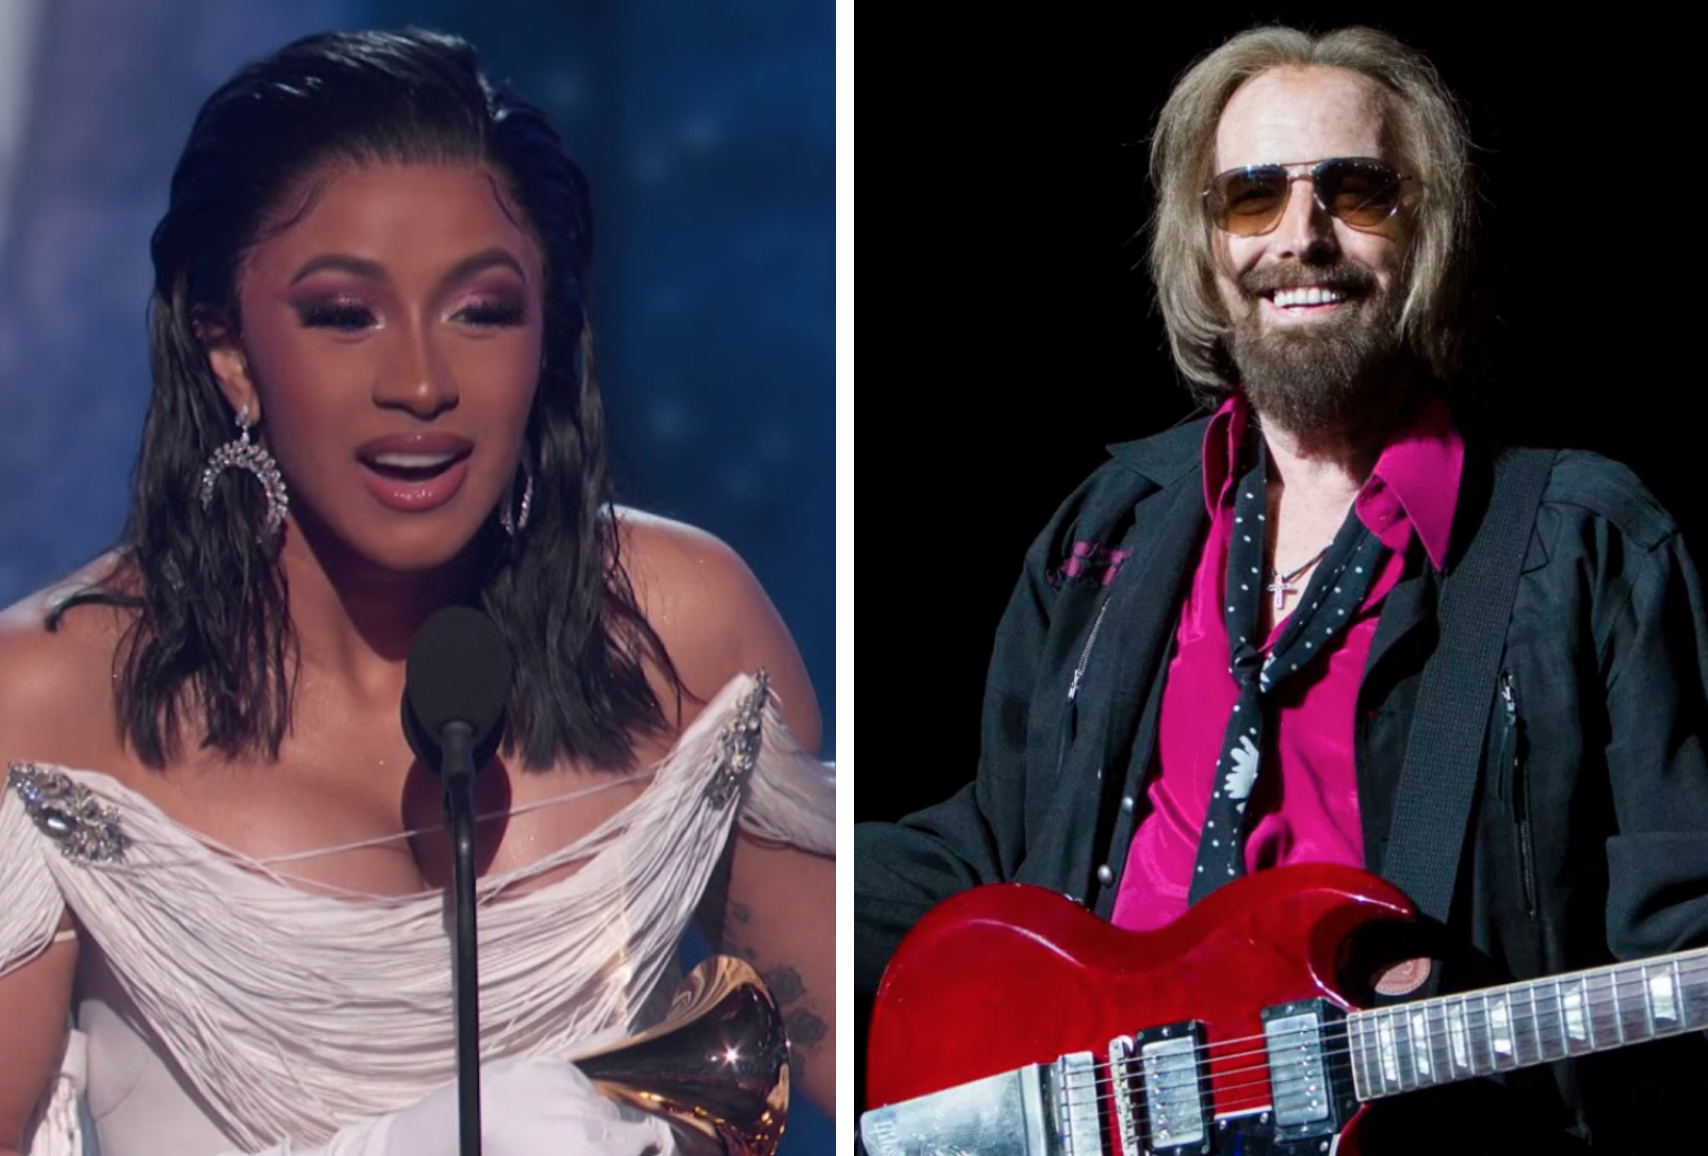 Cardi B Died: Cardi B Thanks Tom Petty, Who Died In 2017, For